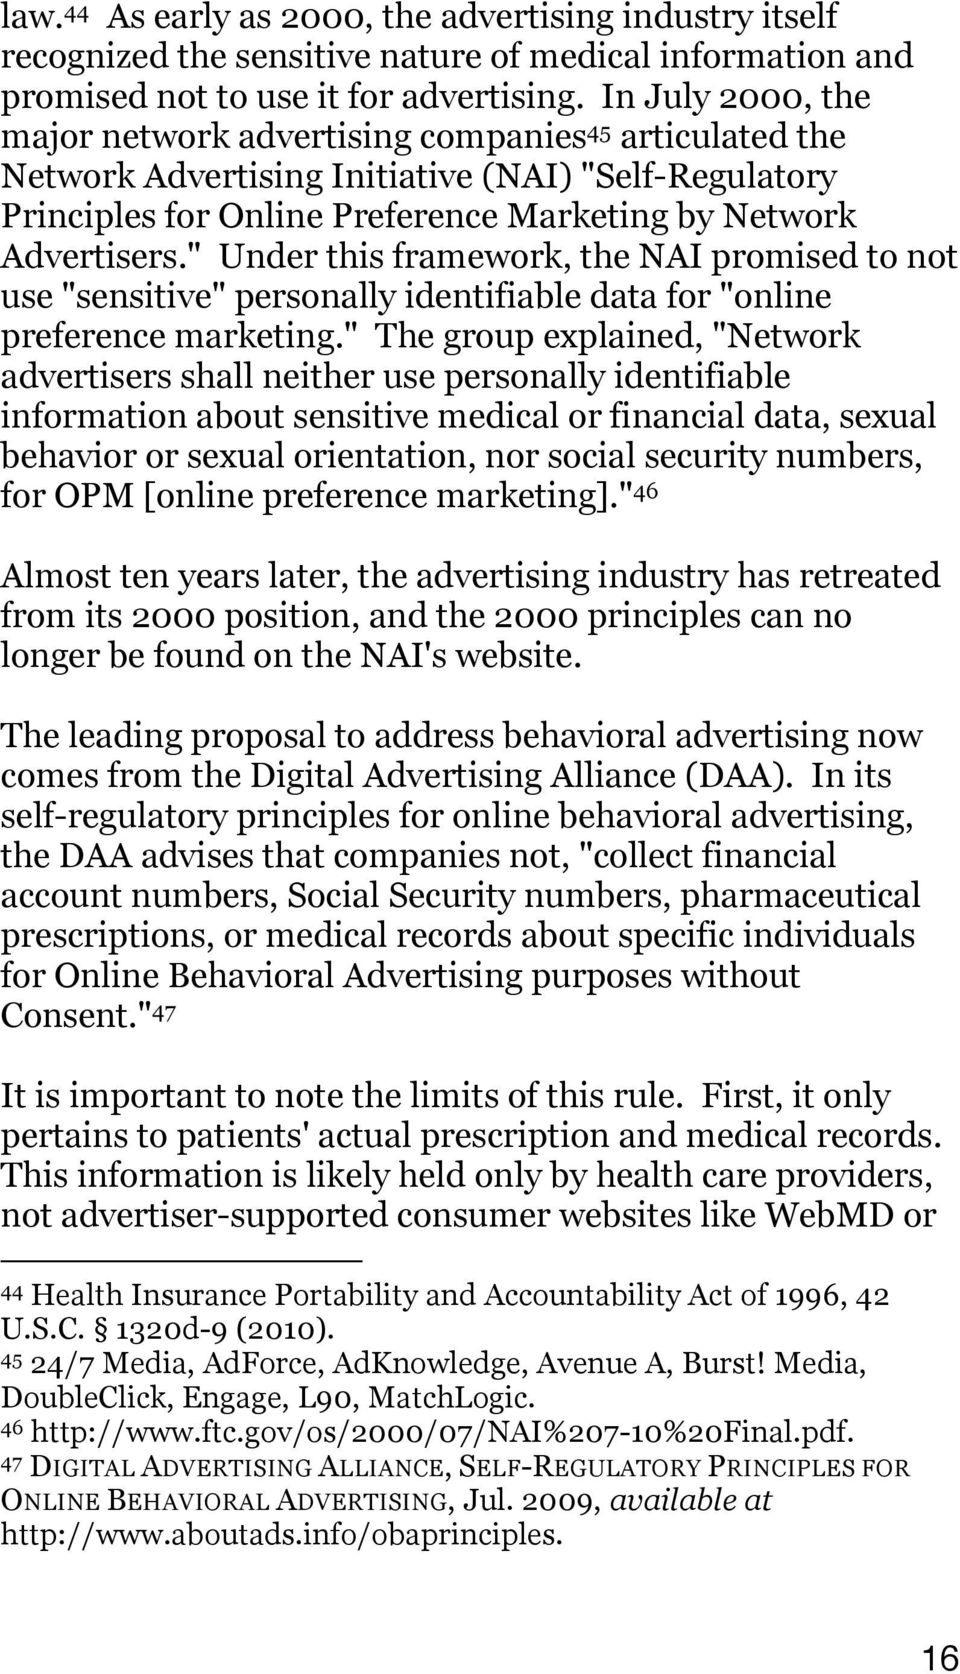 """ Under this framework, the NAI promised to not use ""sensitive"" personally identifiable data for ""online preference marketing."